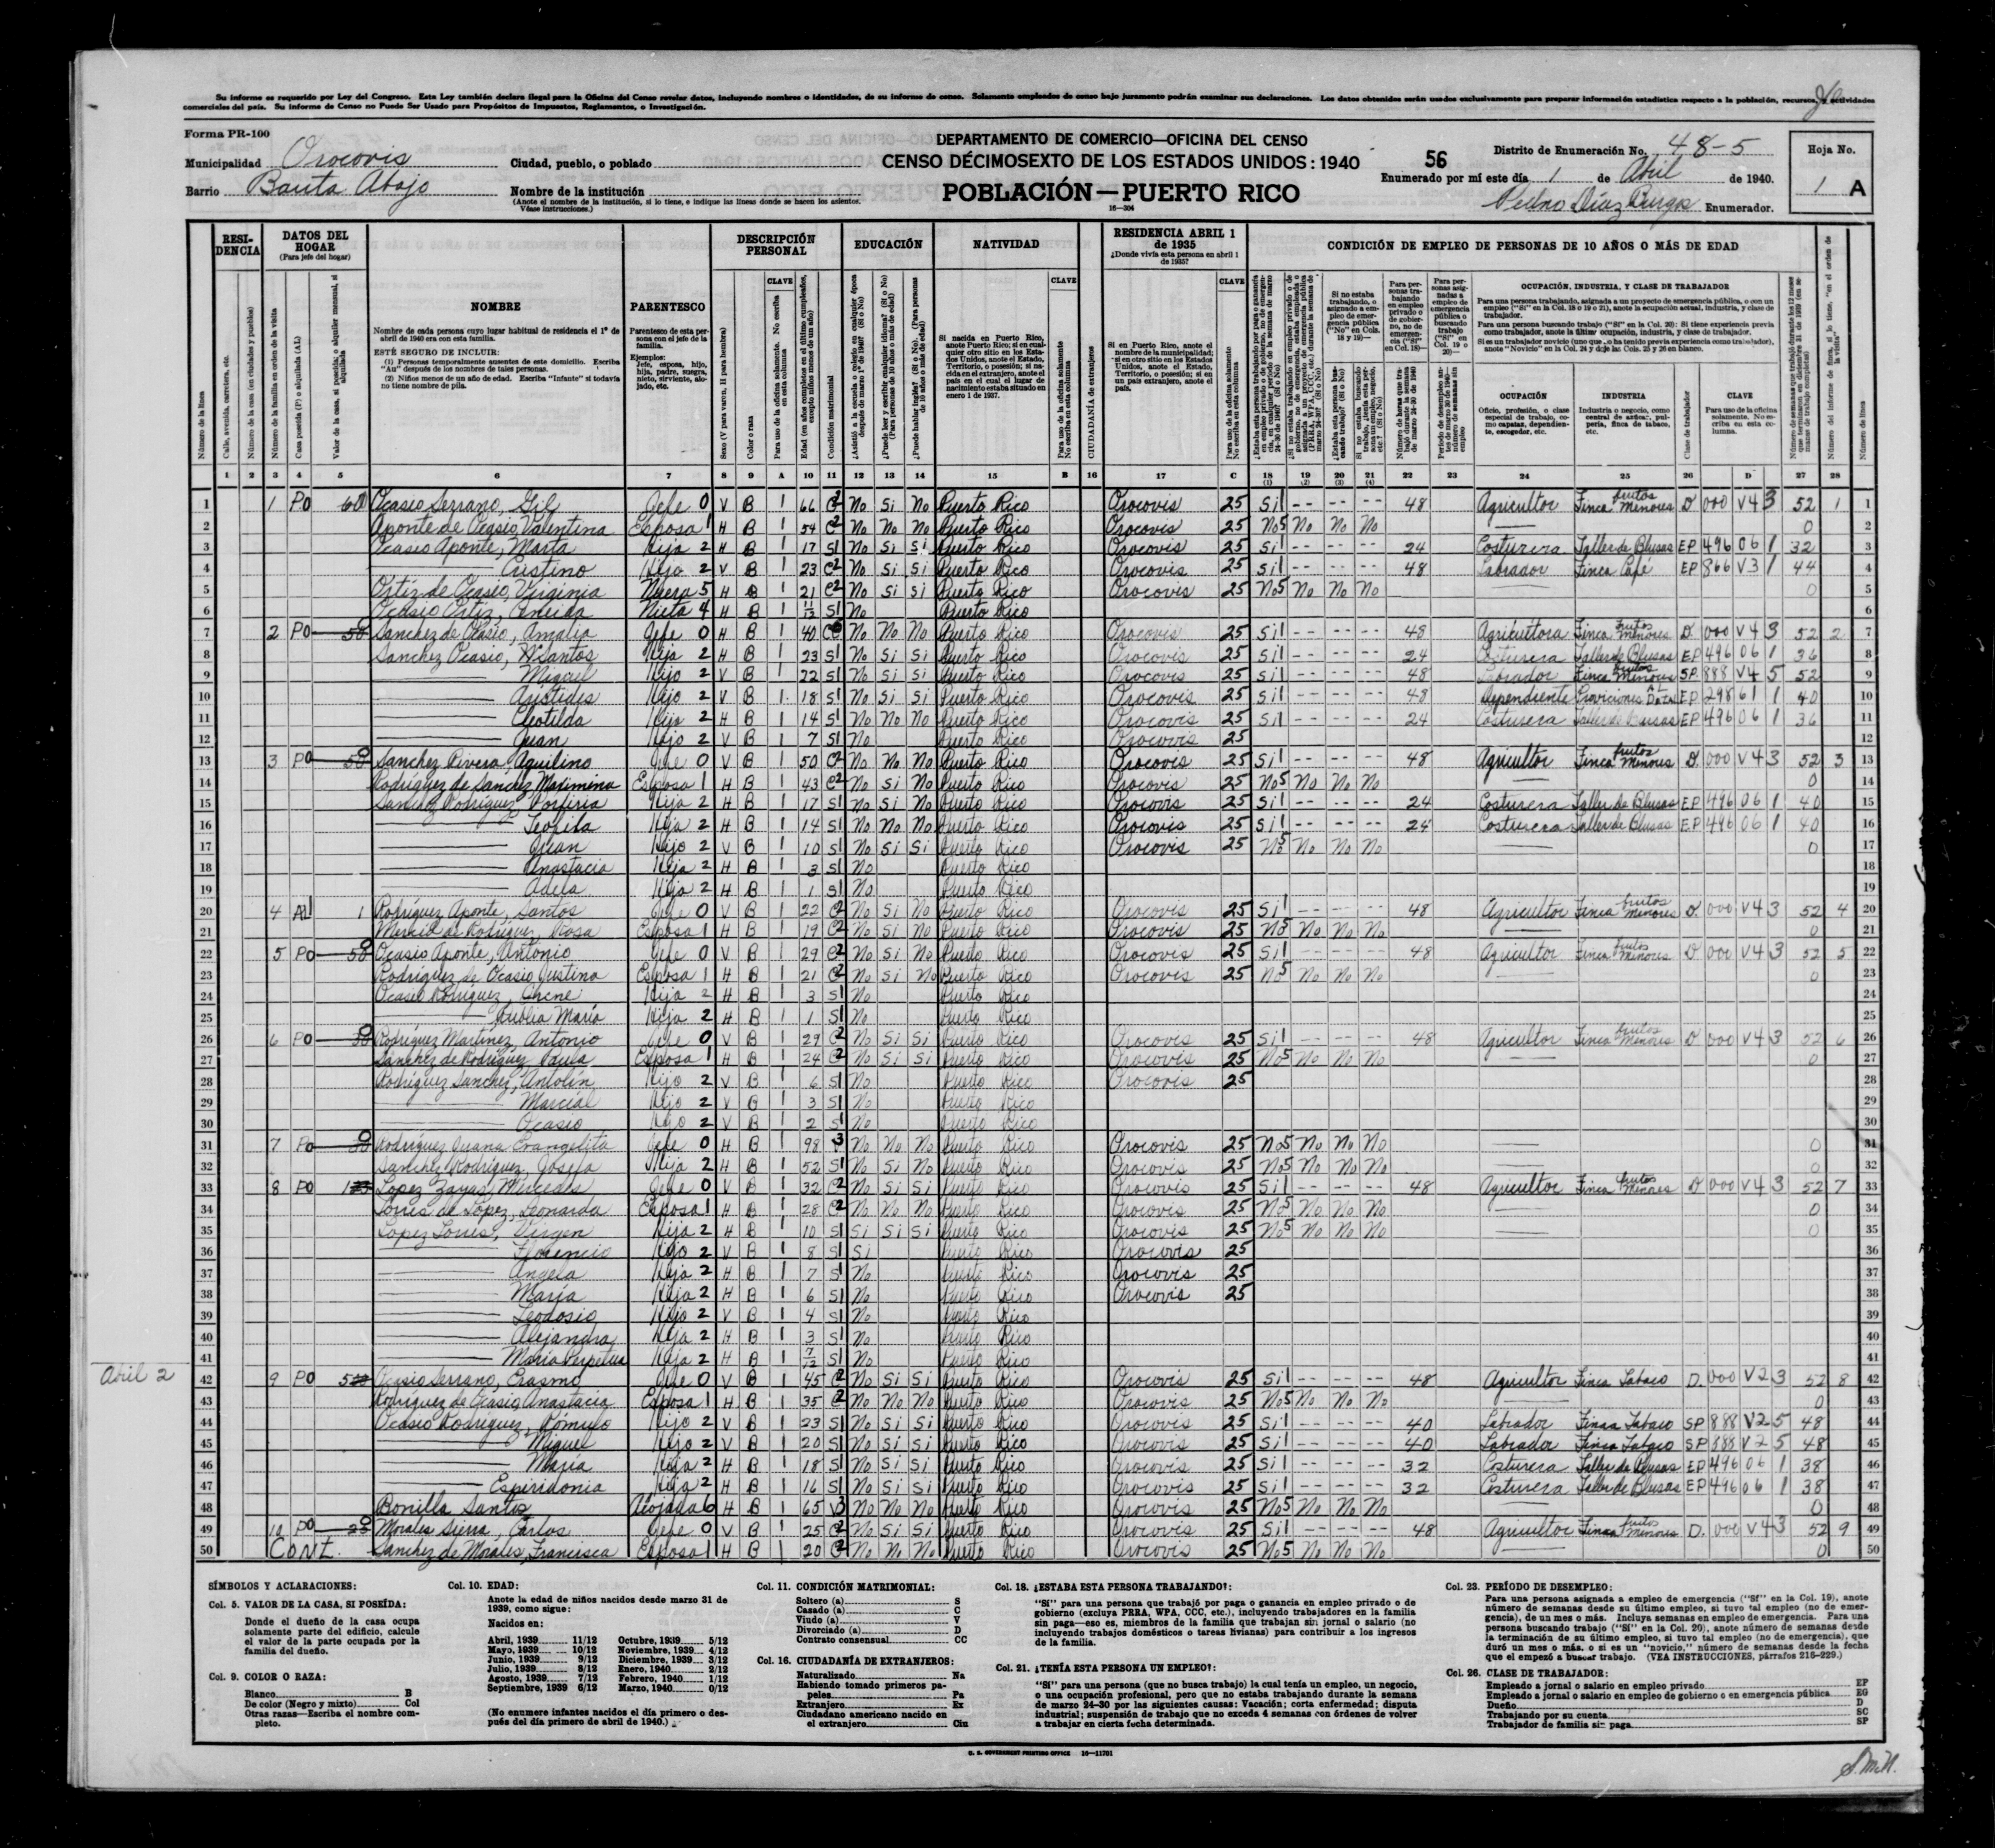 1940 Census Population Schedules - Puerto Rico - Orocovis County - ED 48-5